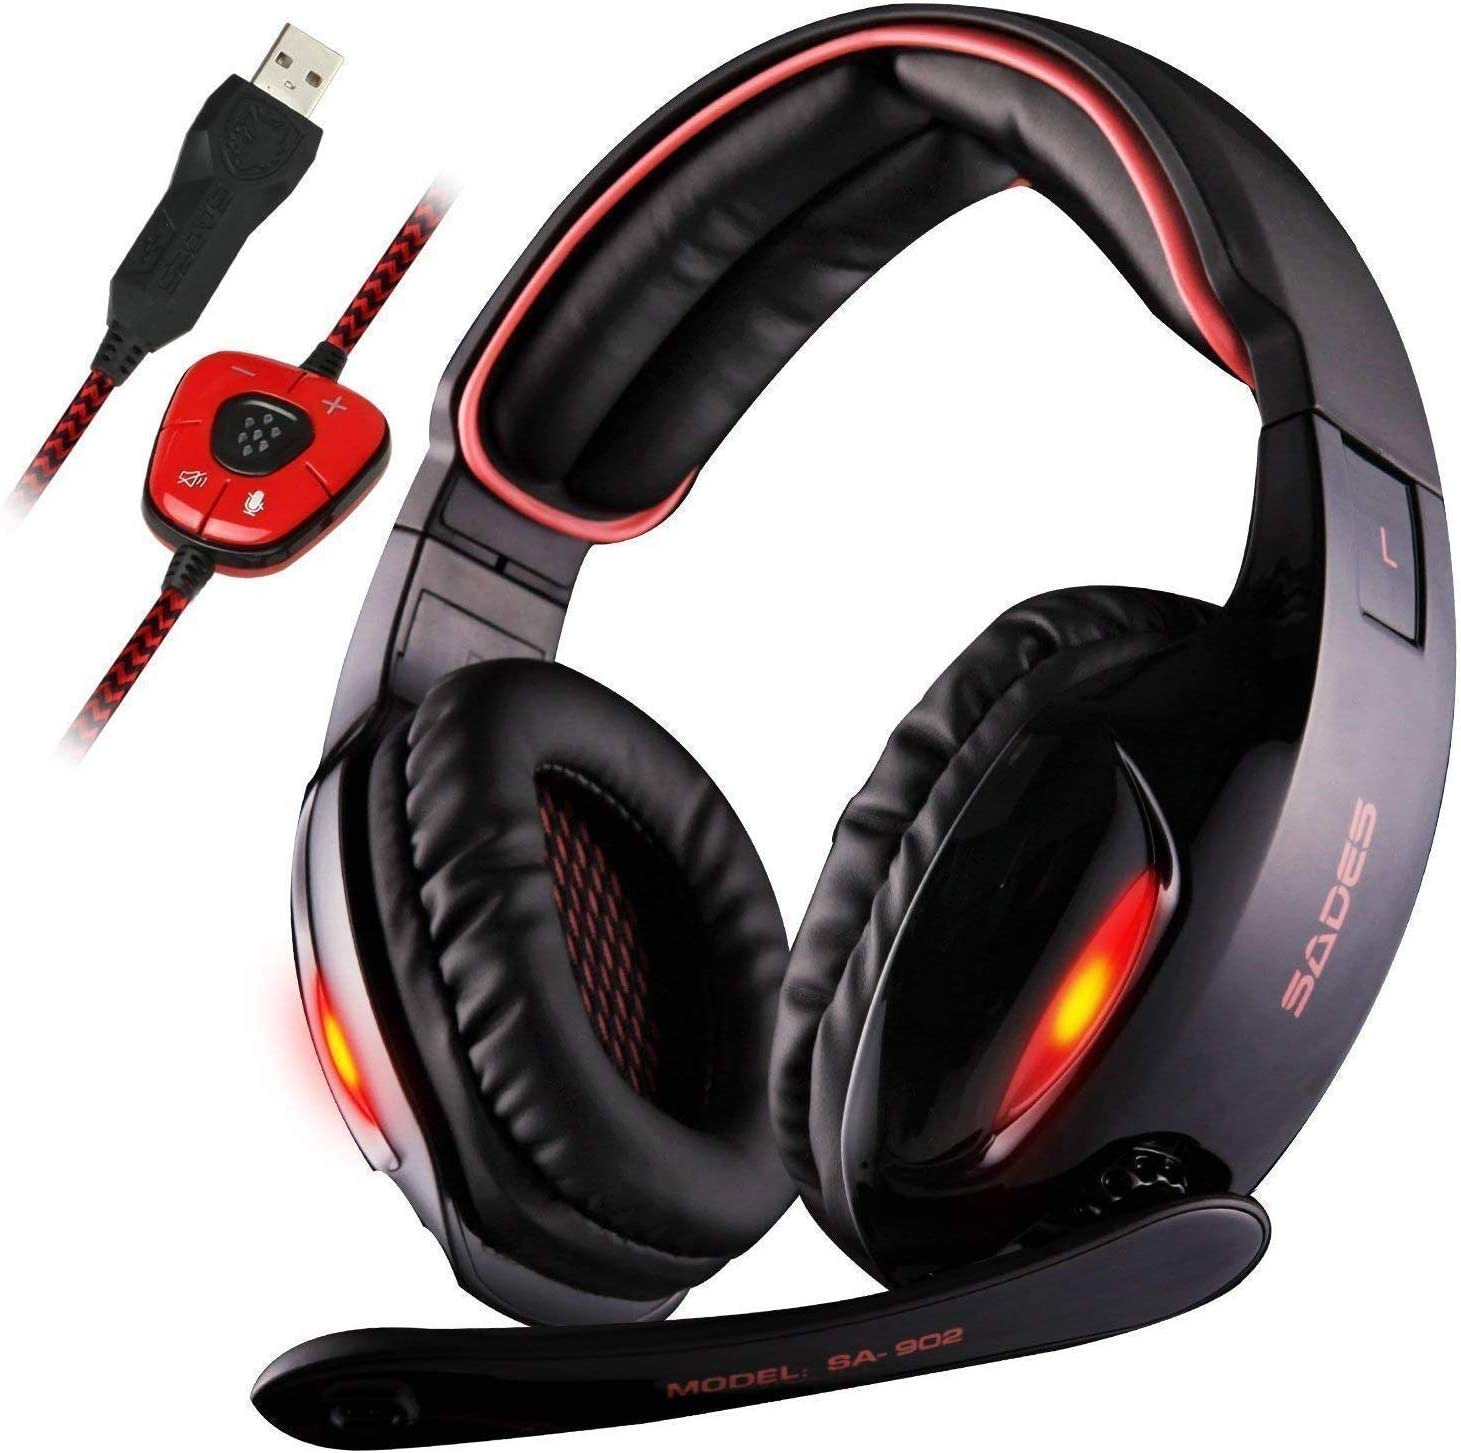 Sades SA902 7.1 Channel Virtual USB Surround Stereo Wired PC Gaming Headset the light contain headset one of the best headset for the gaming and Nintendo switch fortnite